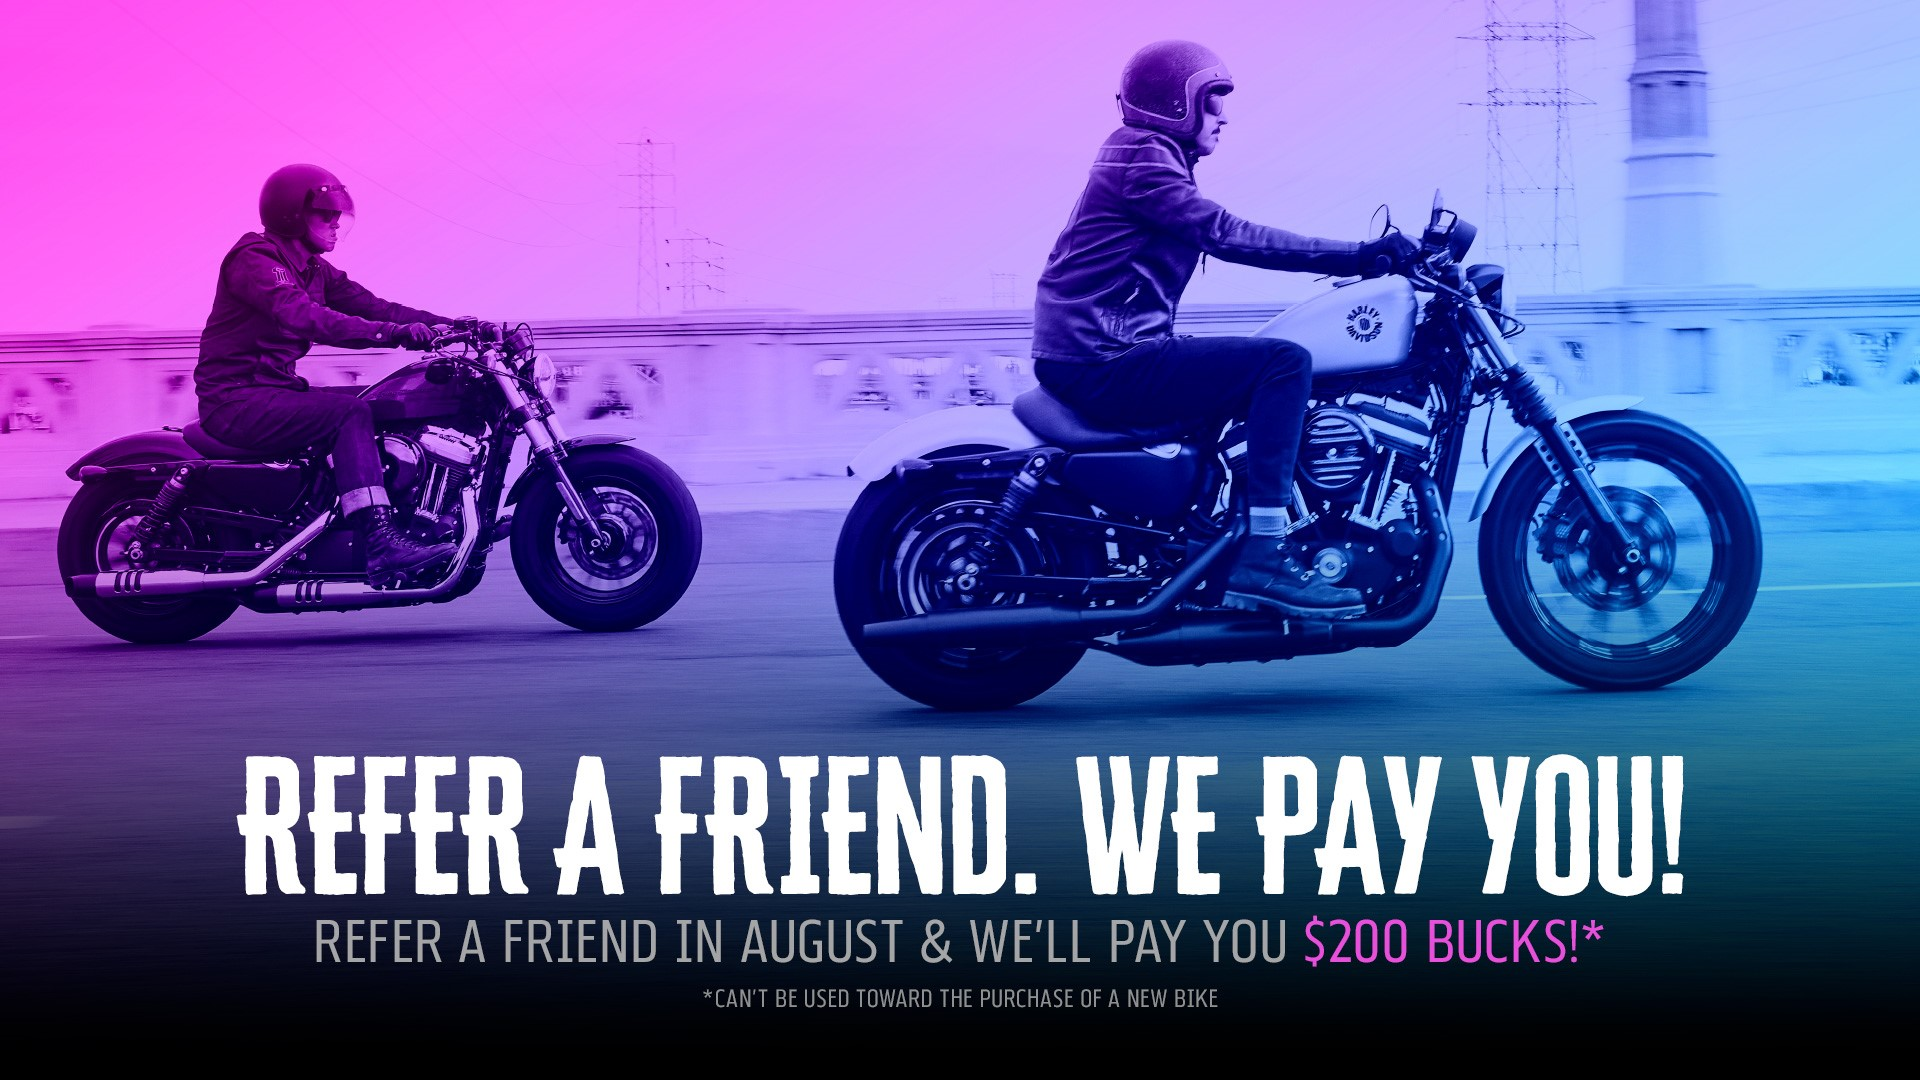 REFER A FRIEND. WE PAY YOU!!!